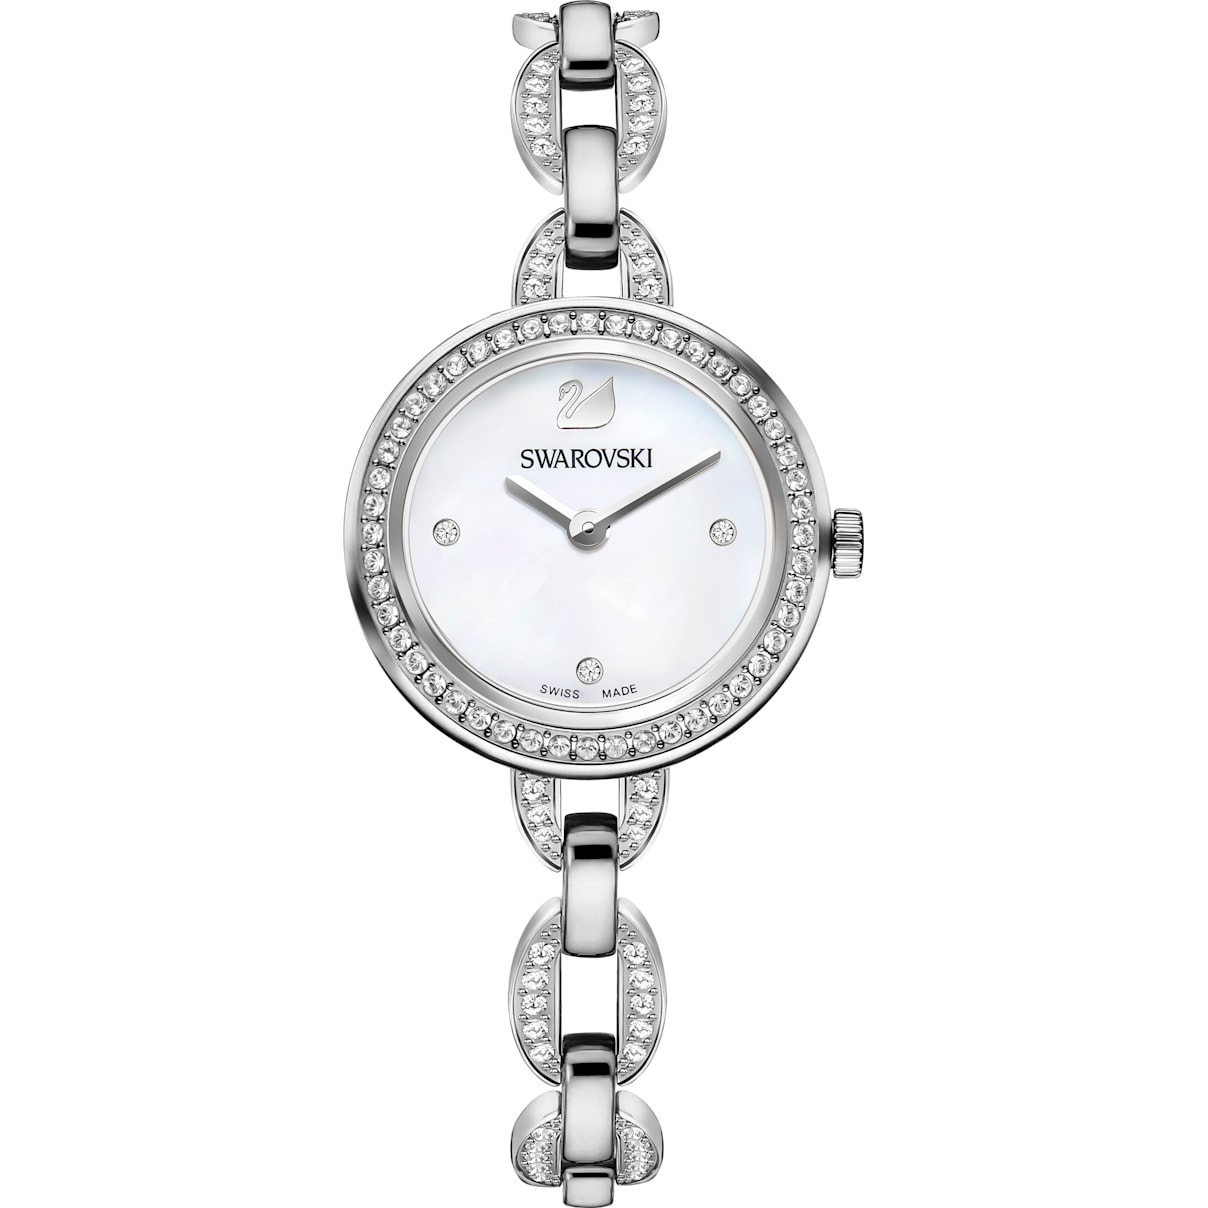 Swarovski Aila Mini Watch, Metal bracelet, Stainless steel